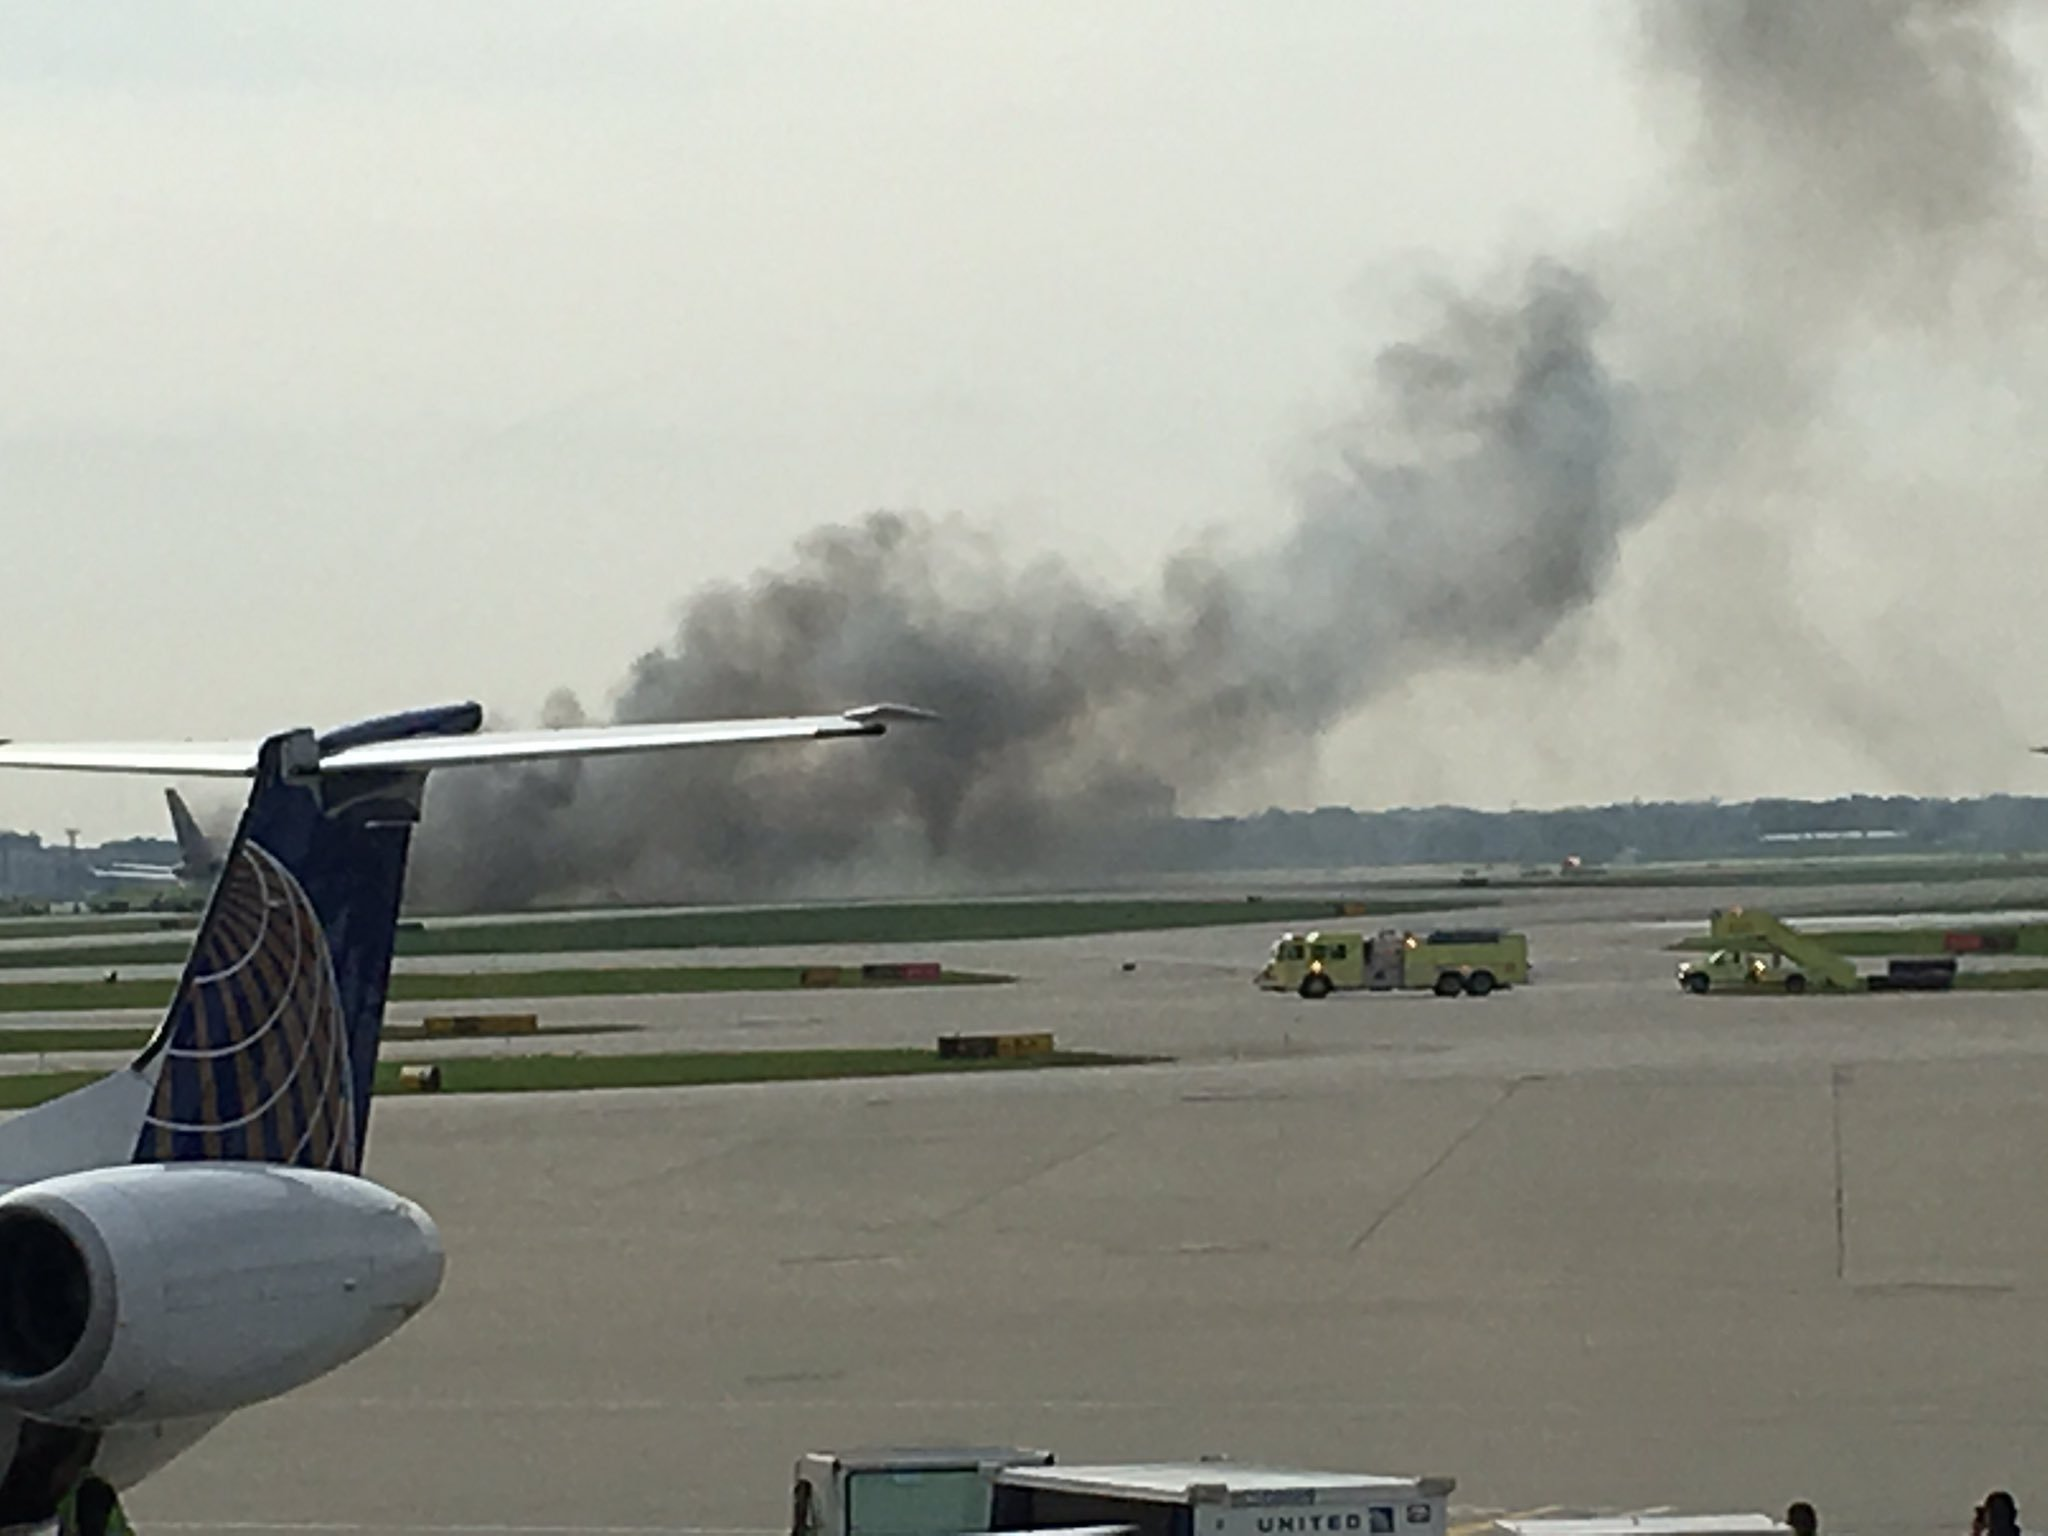 Pilots safe after FedEx plane catches on fire in Florida